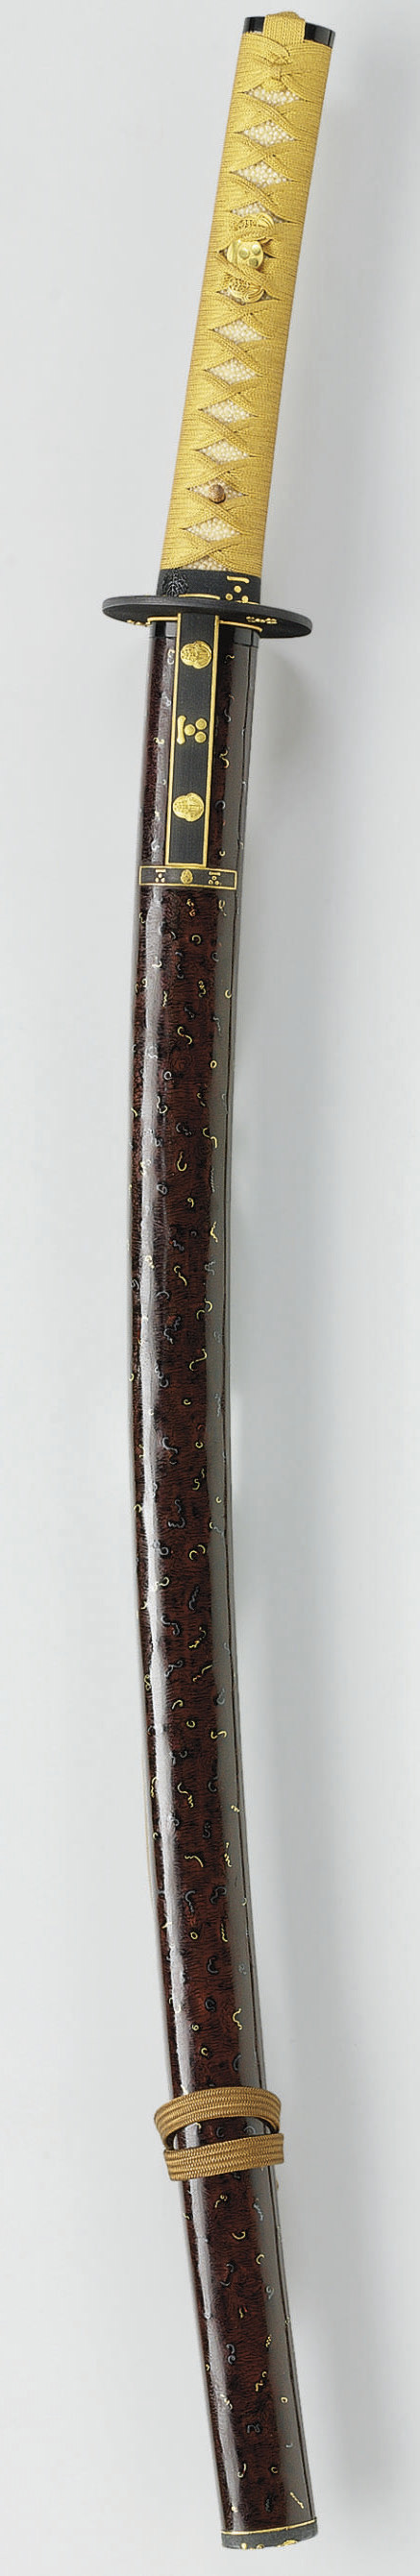 A Brown-Lacquer Koshirae with Crests of the Mori Family